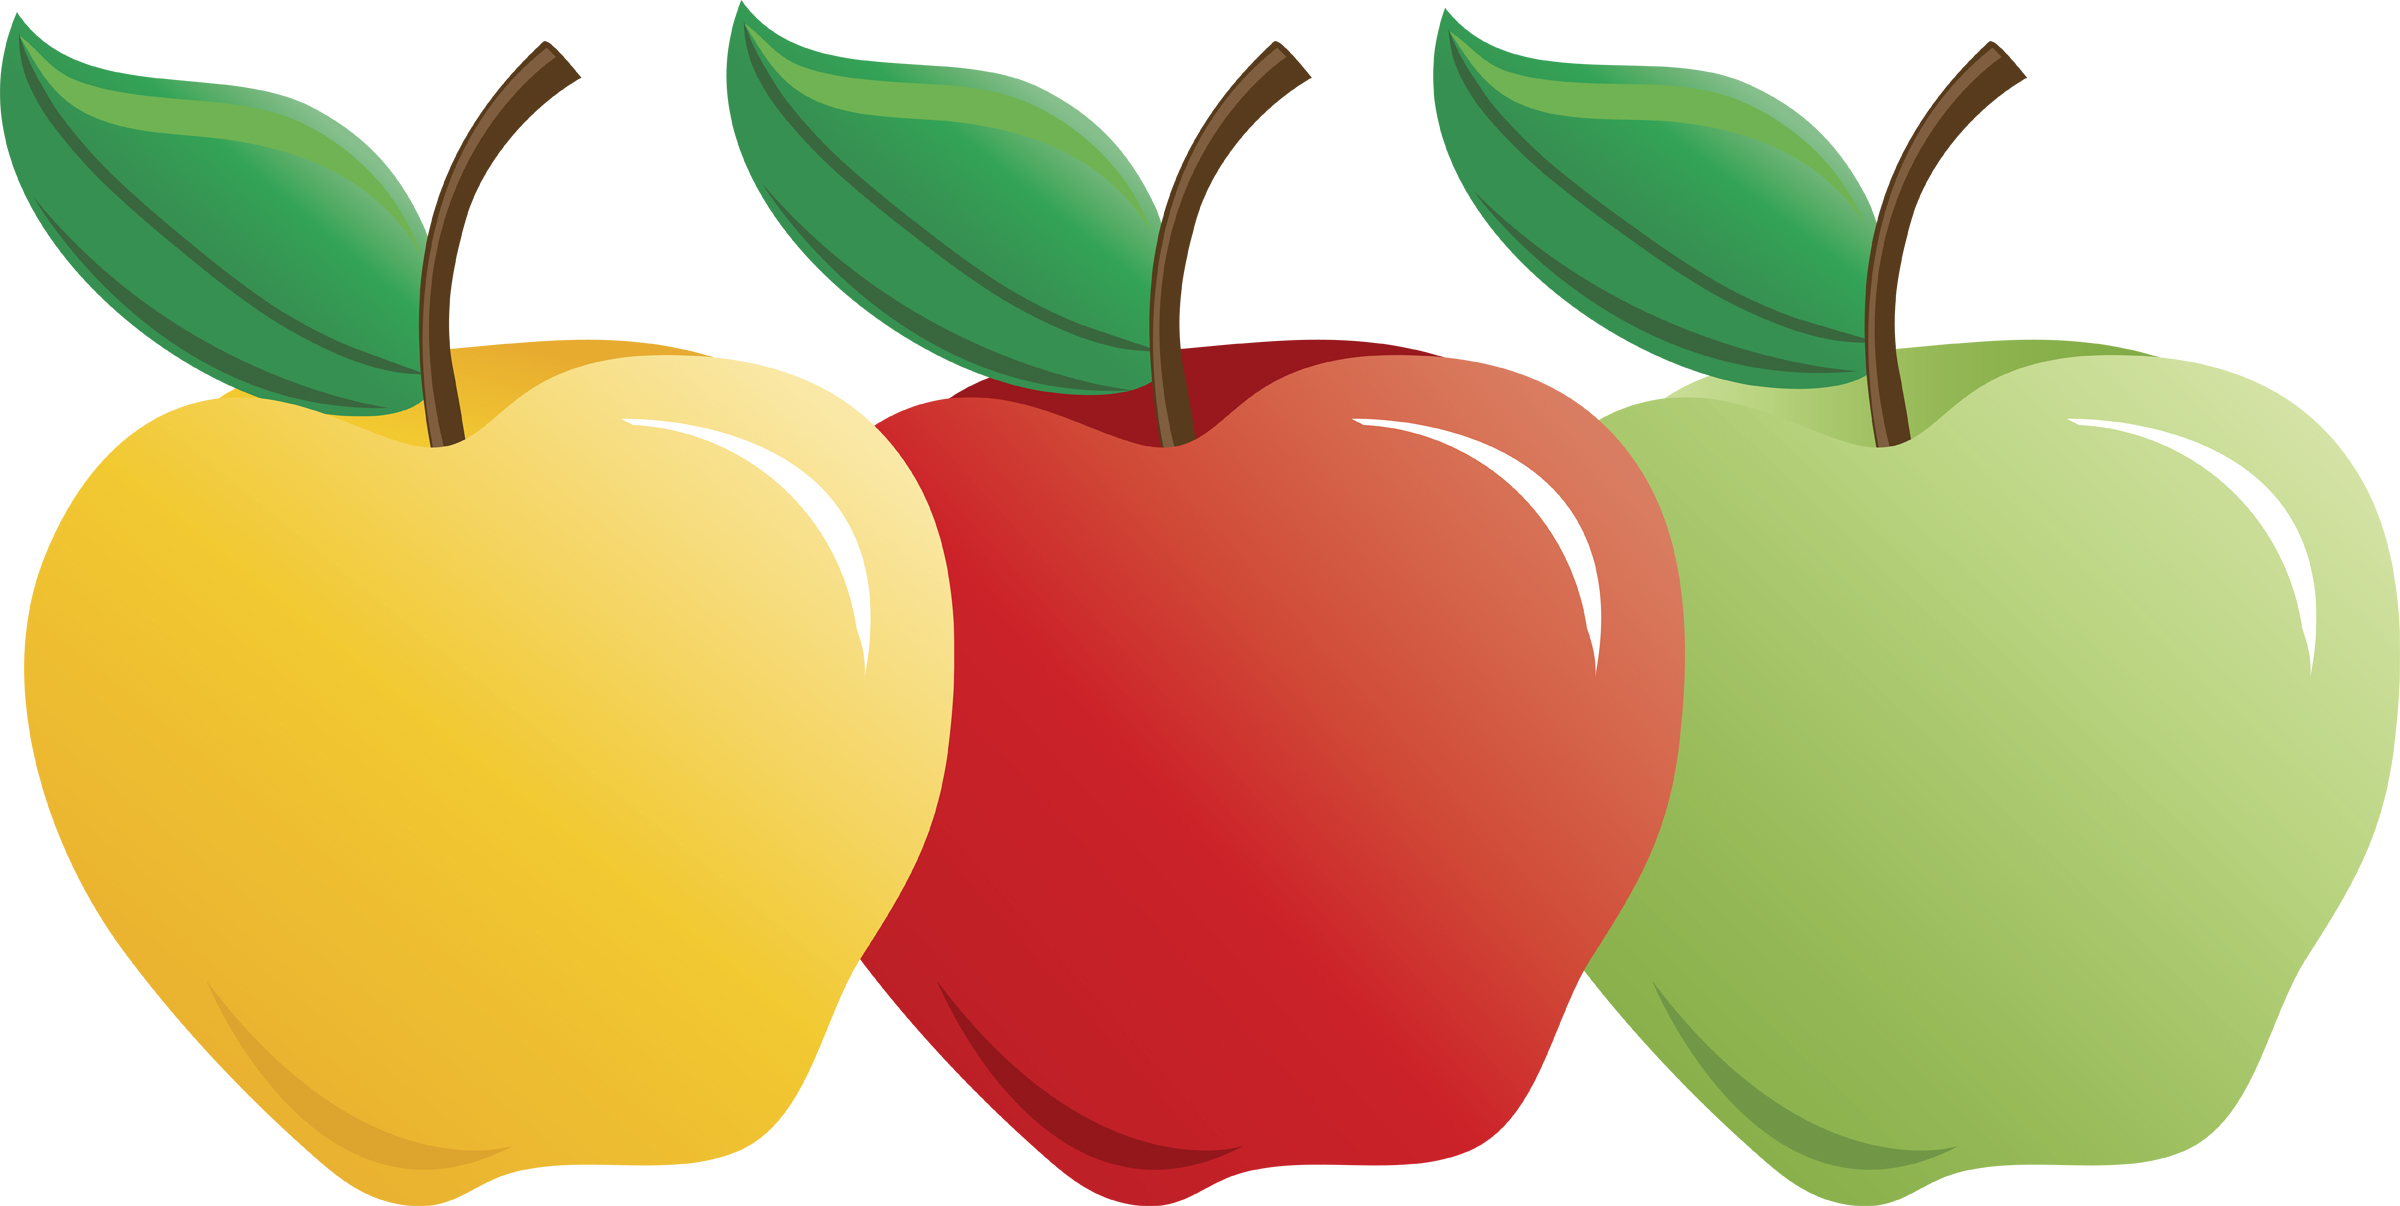 vector black and white stock 4 apples clipart. Apple clip art free